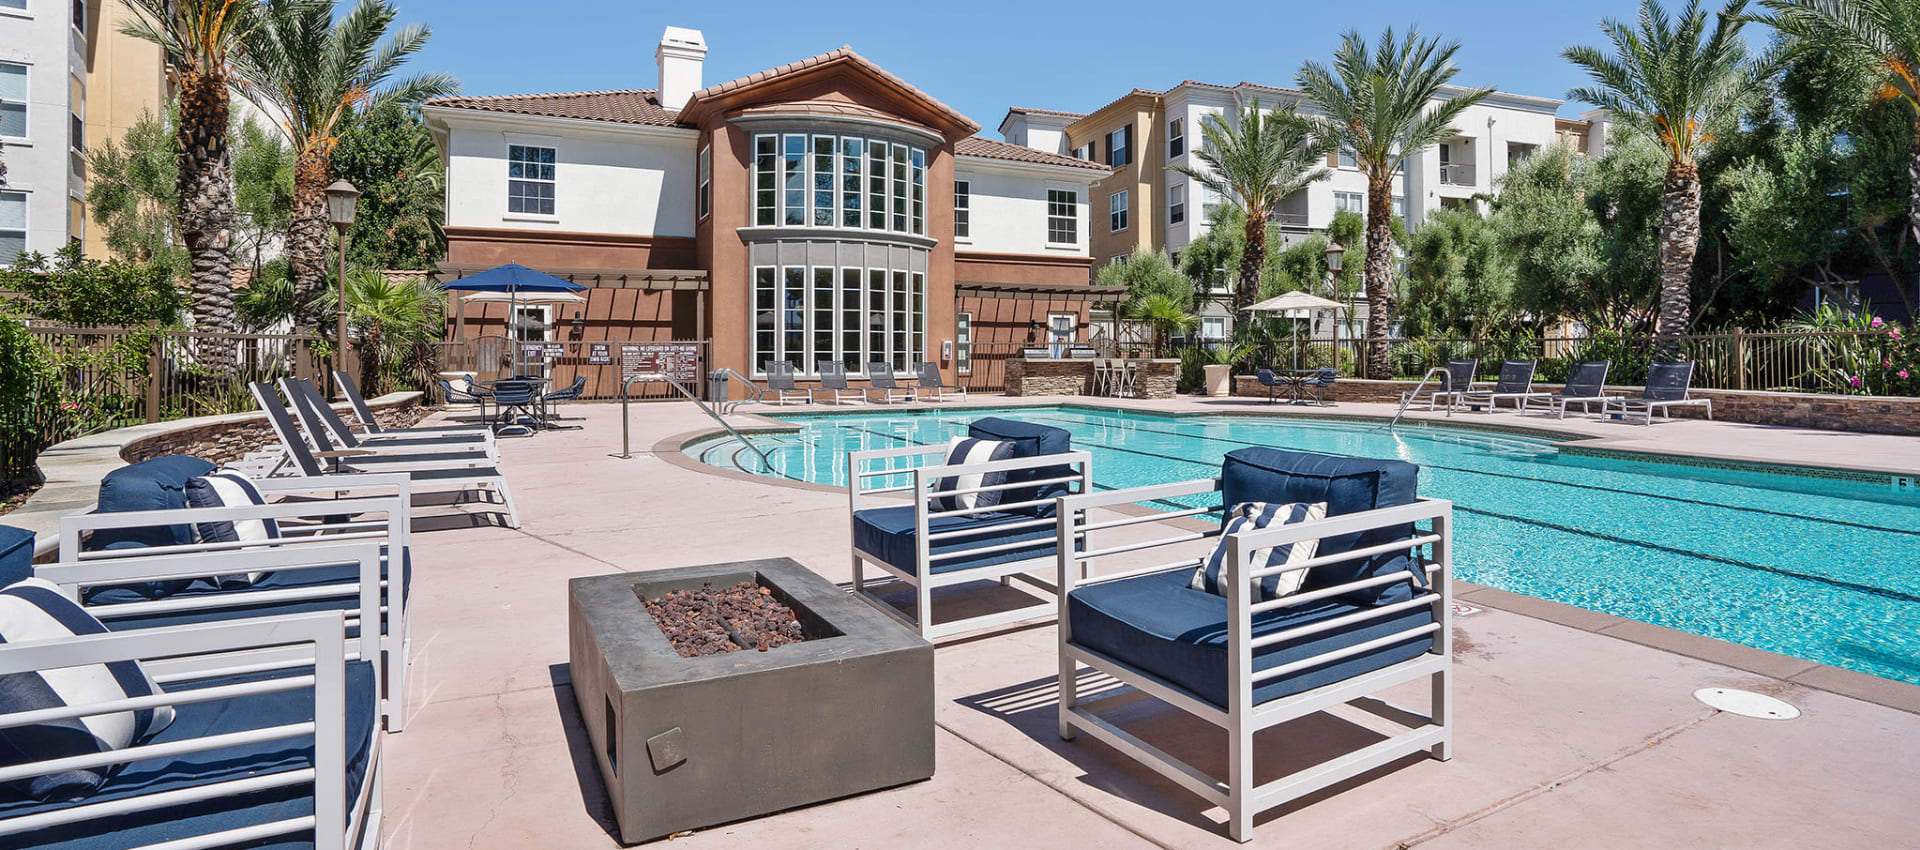 Lounge seating at the swimming pool at Park Central in Concord, California